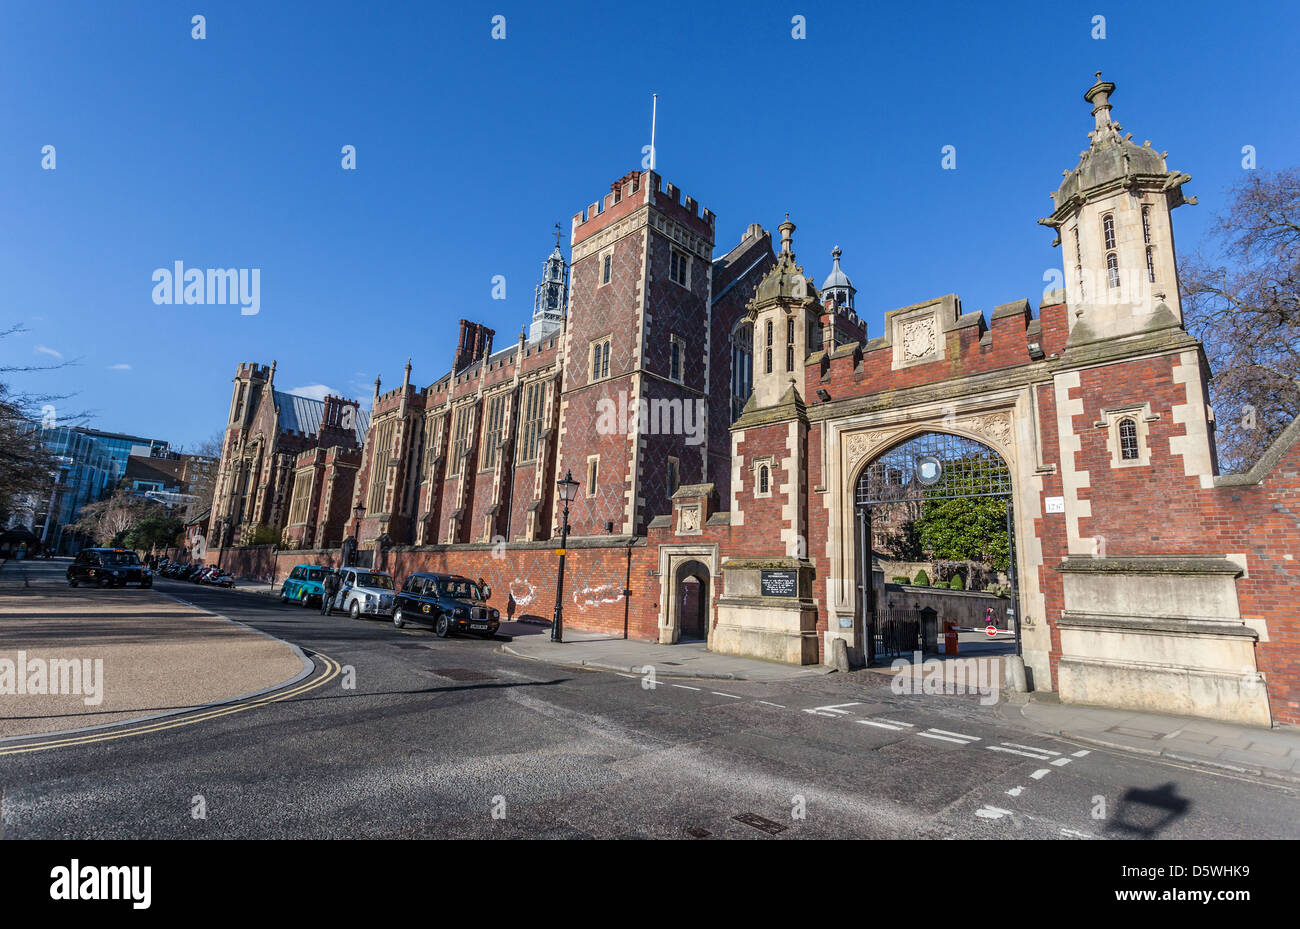 The Gate House à l'Honorable Société de Lincoln's Inn, Lincolns Inn, Newman's Row, Holborn, Photo Stock